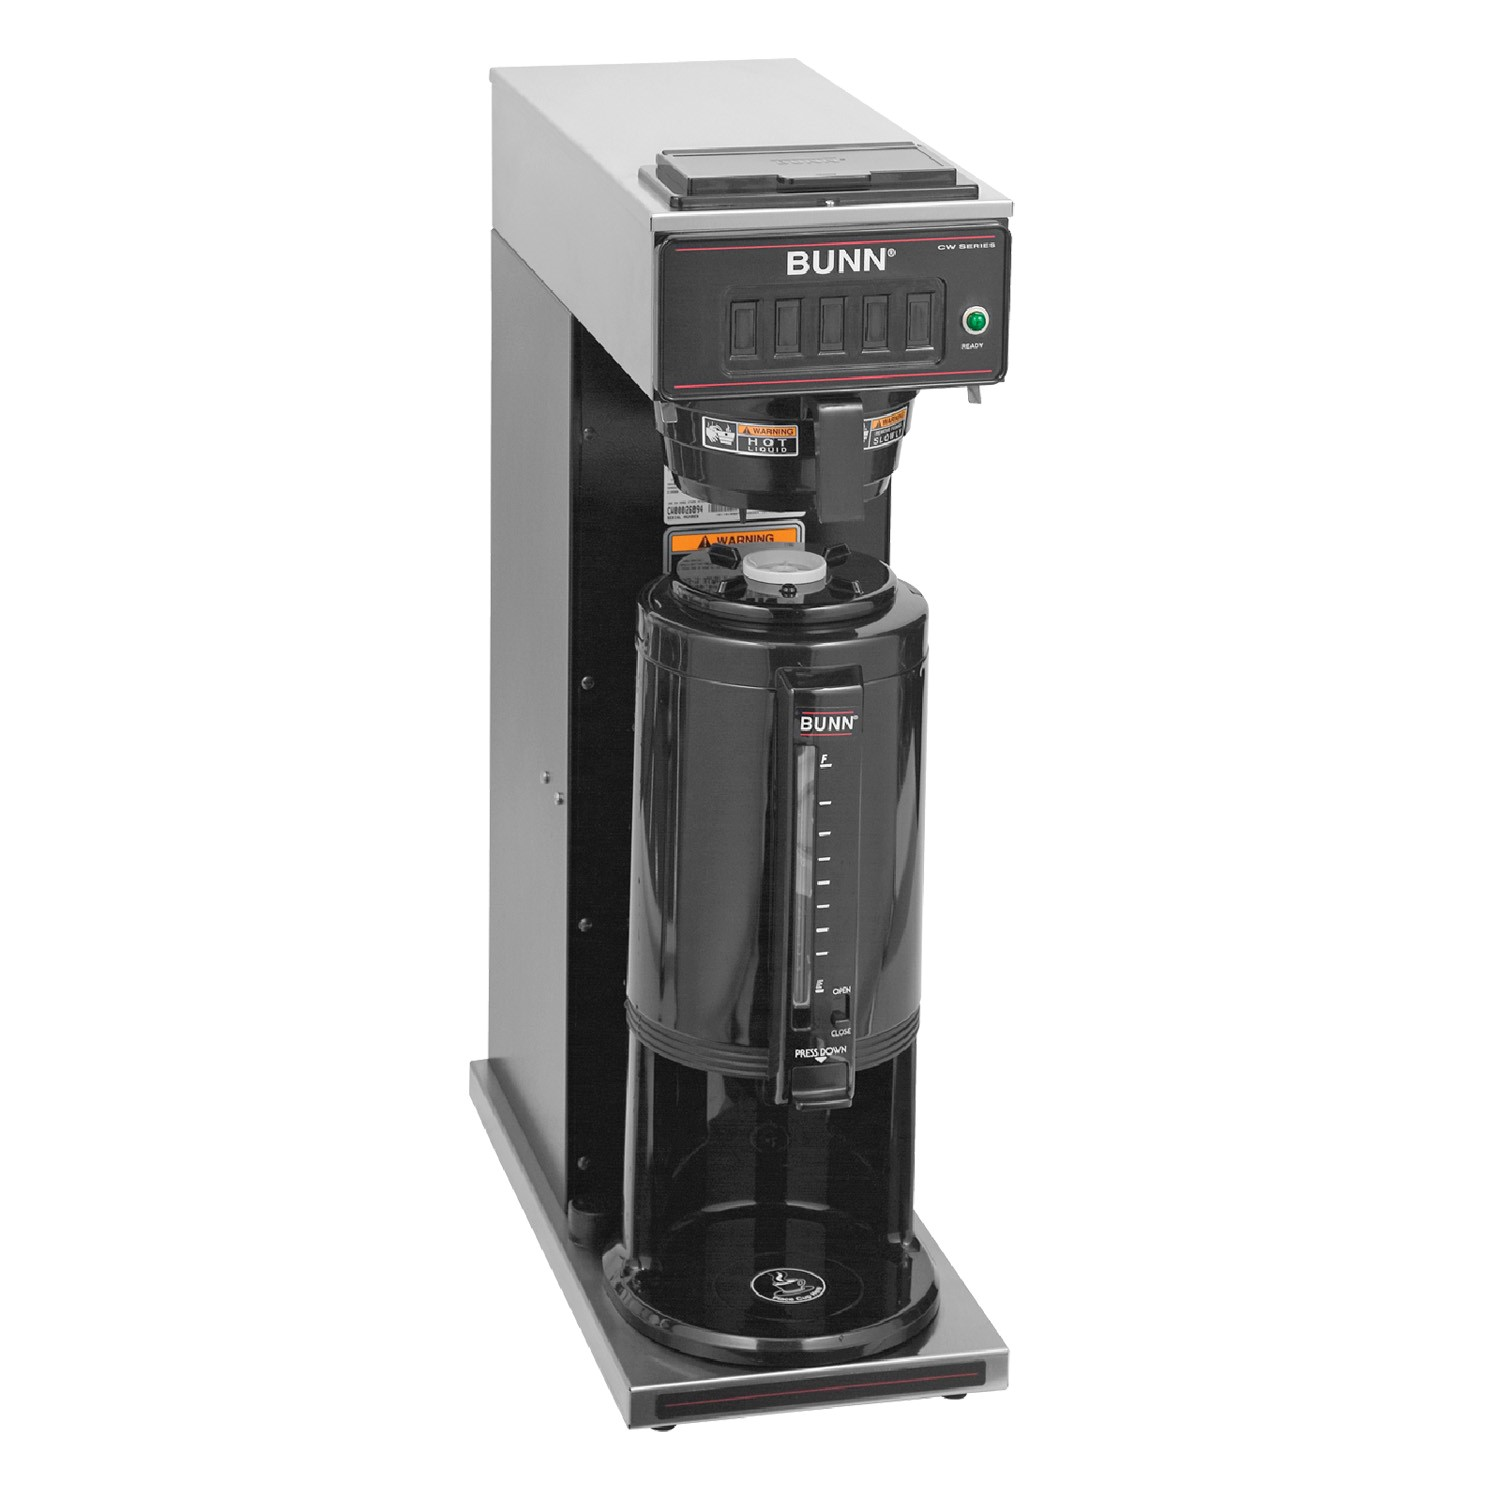 Bunn CW-15 TS Pourover Coffee Brewer for Portable Thermal Servers including base